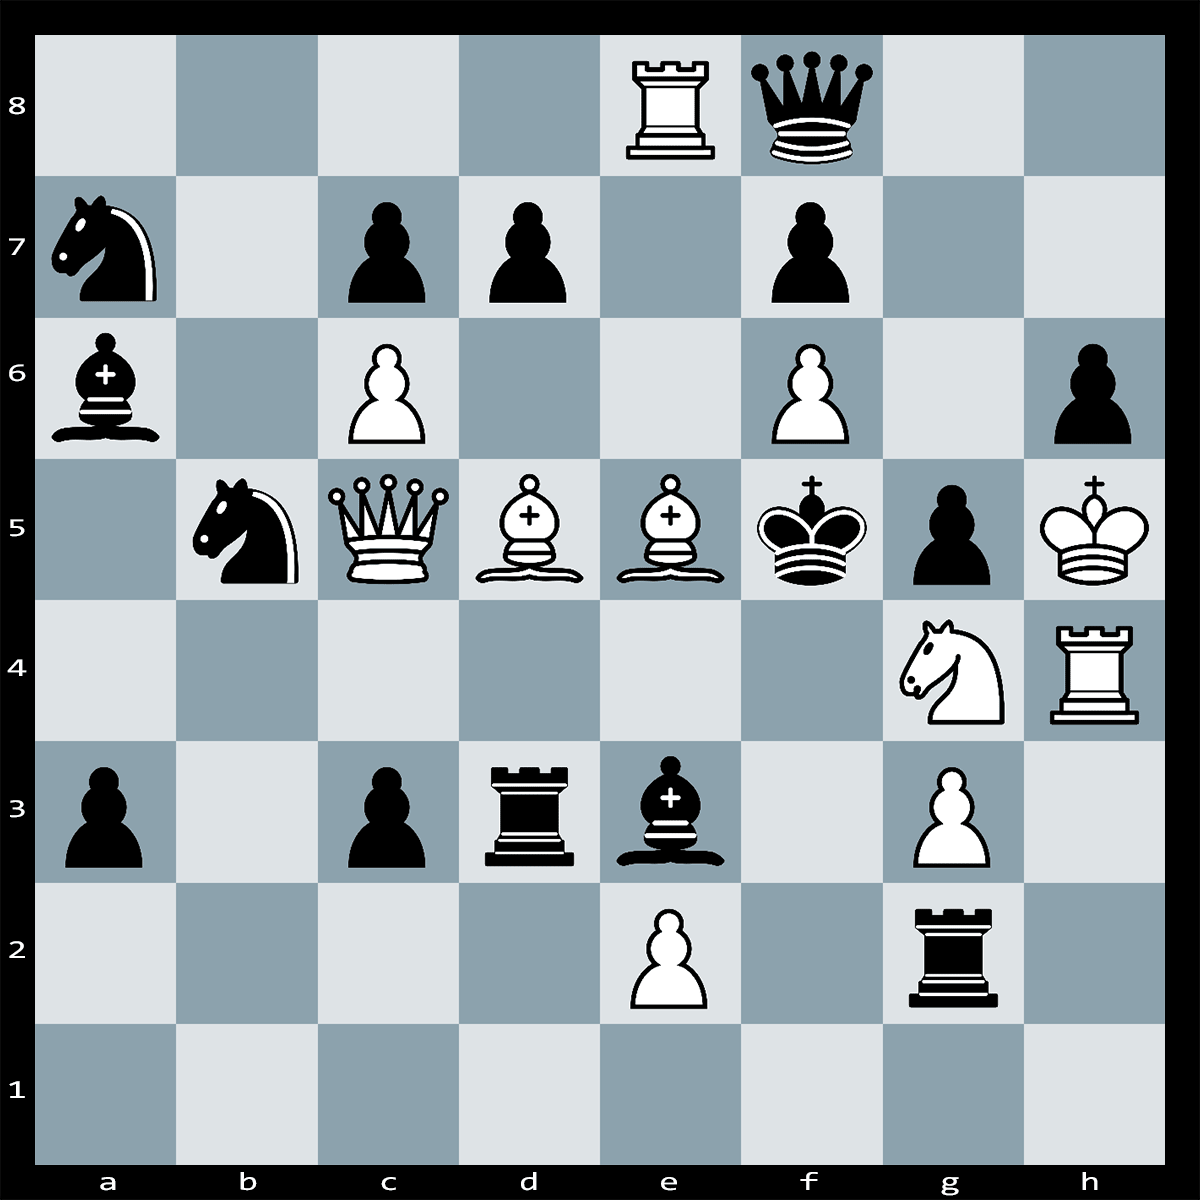 Find the Best Move, Mate in Two White to Play